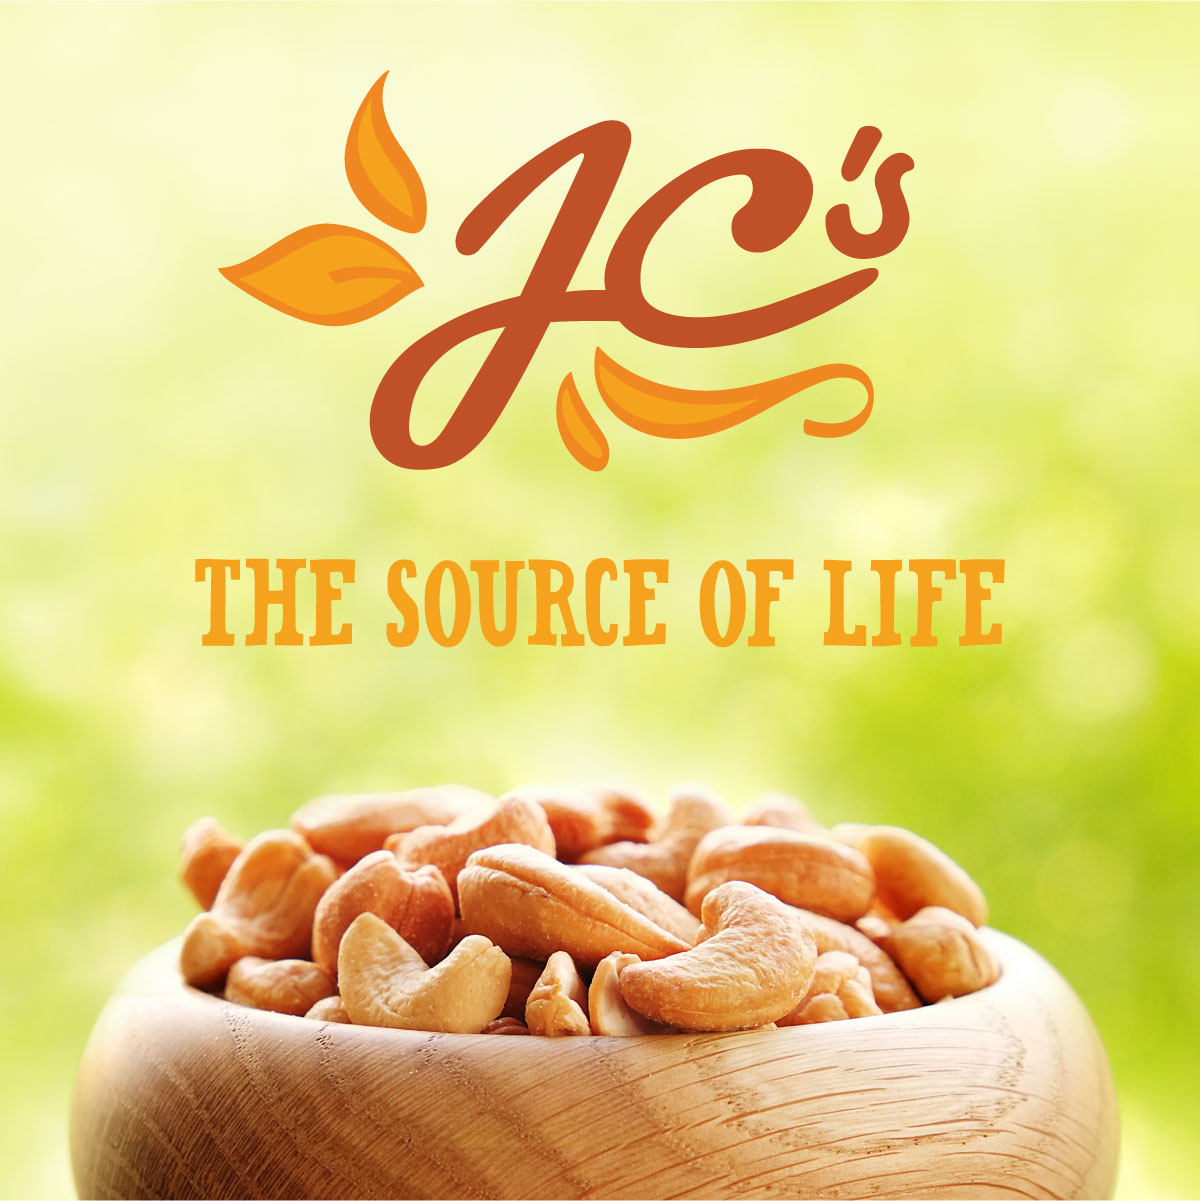 JC's Quality Foods Nuts Brand Identity Packaging Design Digital Website